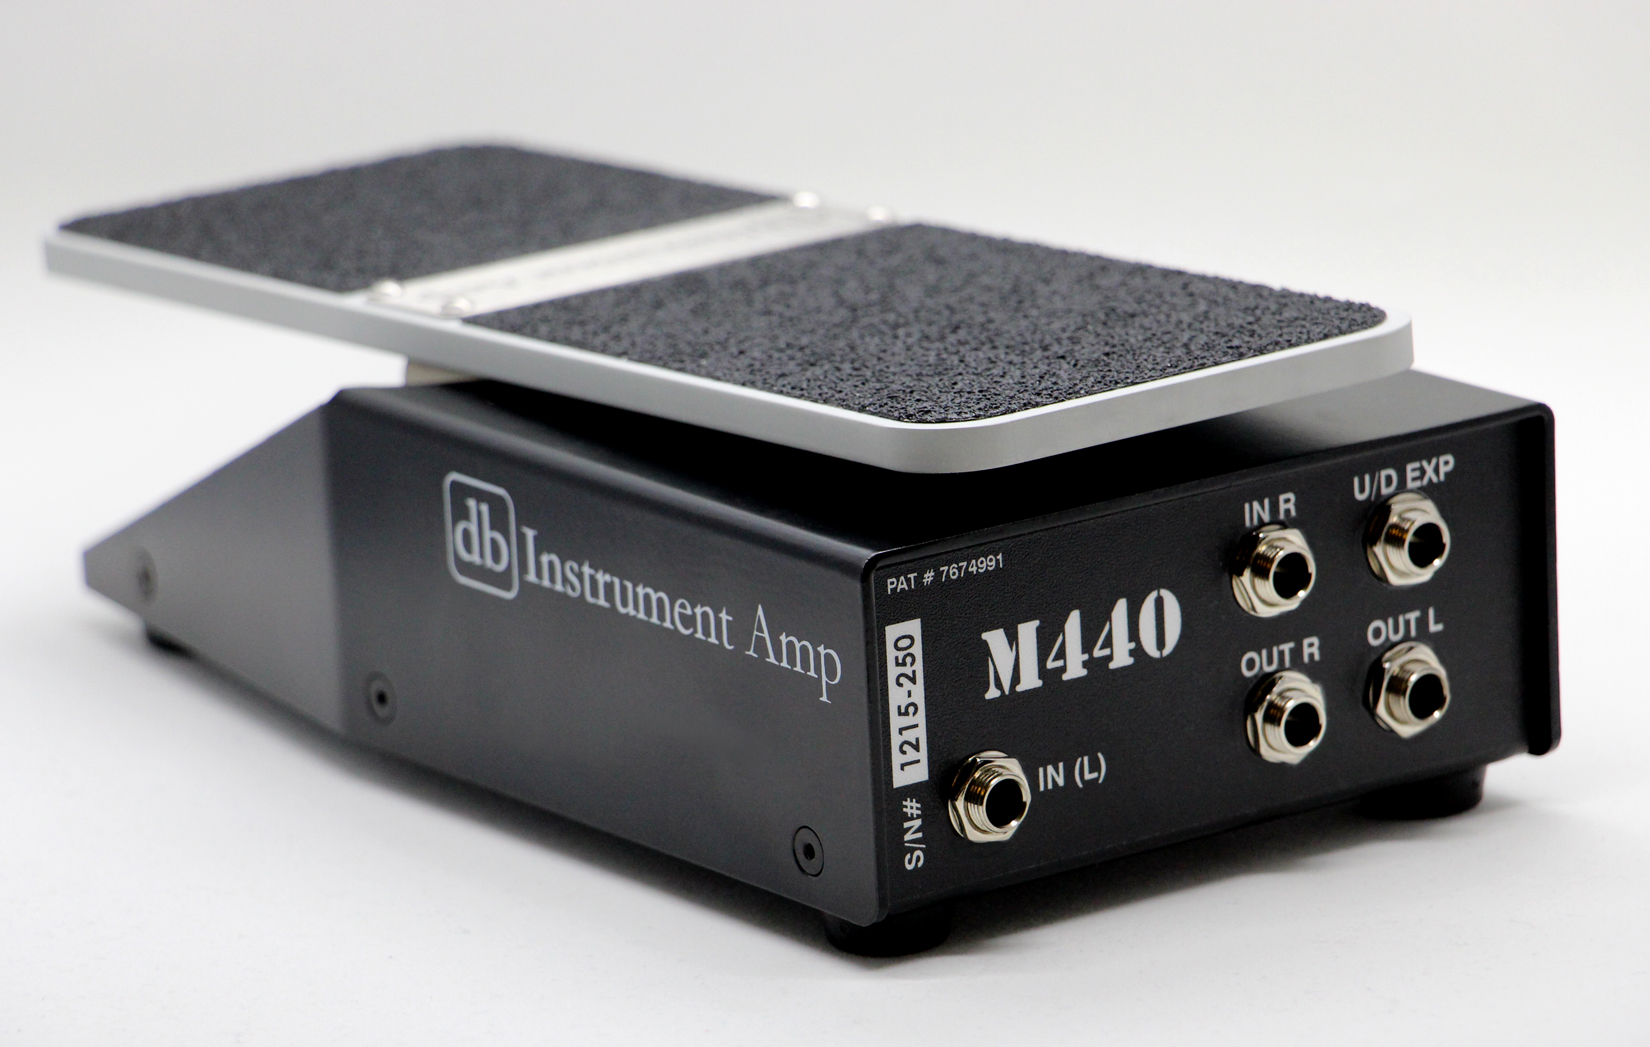 m440 dual axis stereo volume pedal db instrument amp. Black Bedroom Furniture Sets. Home Design Ideas